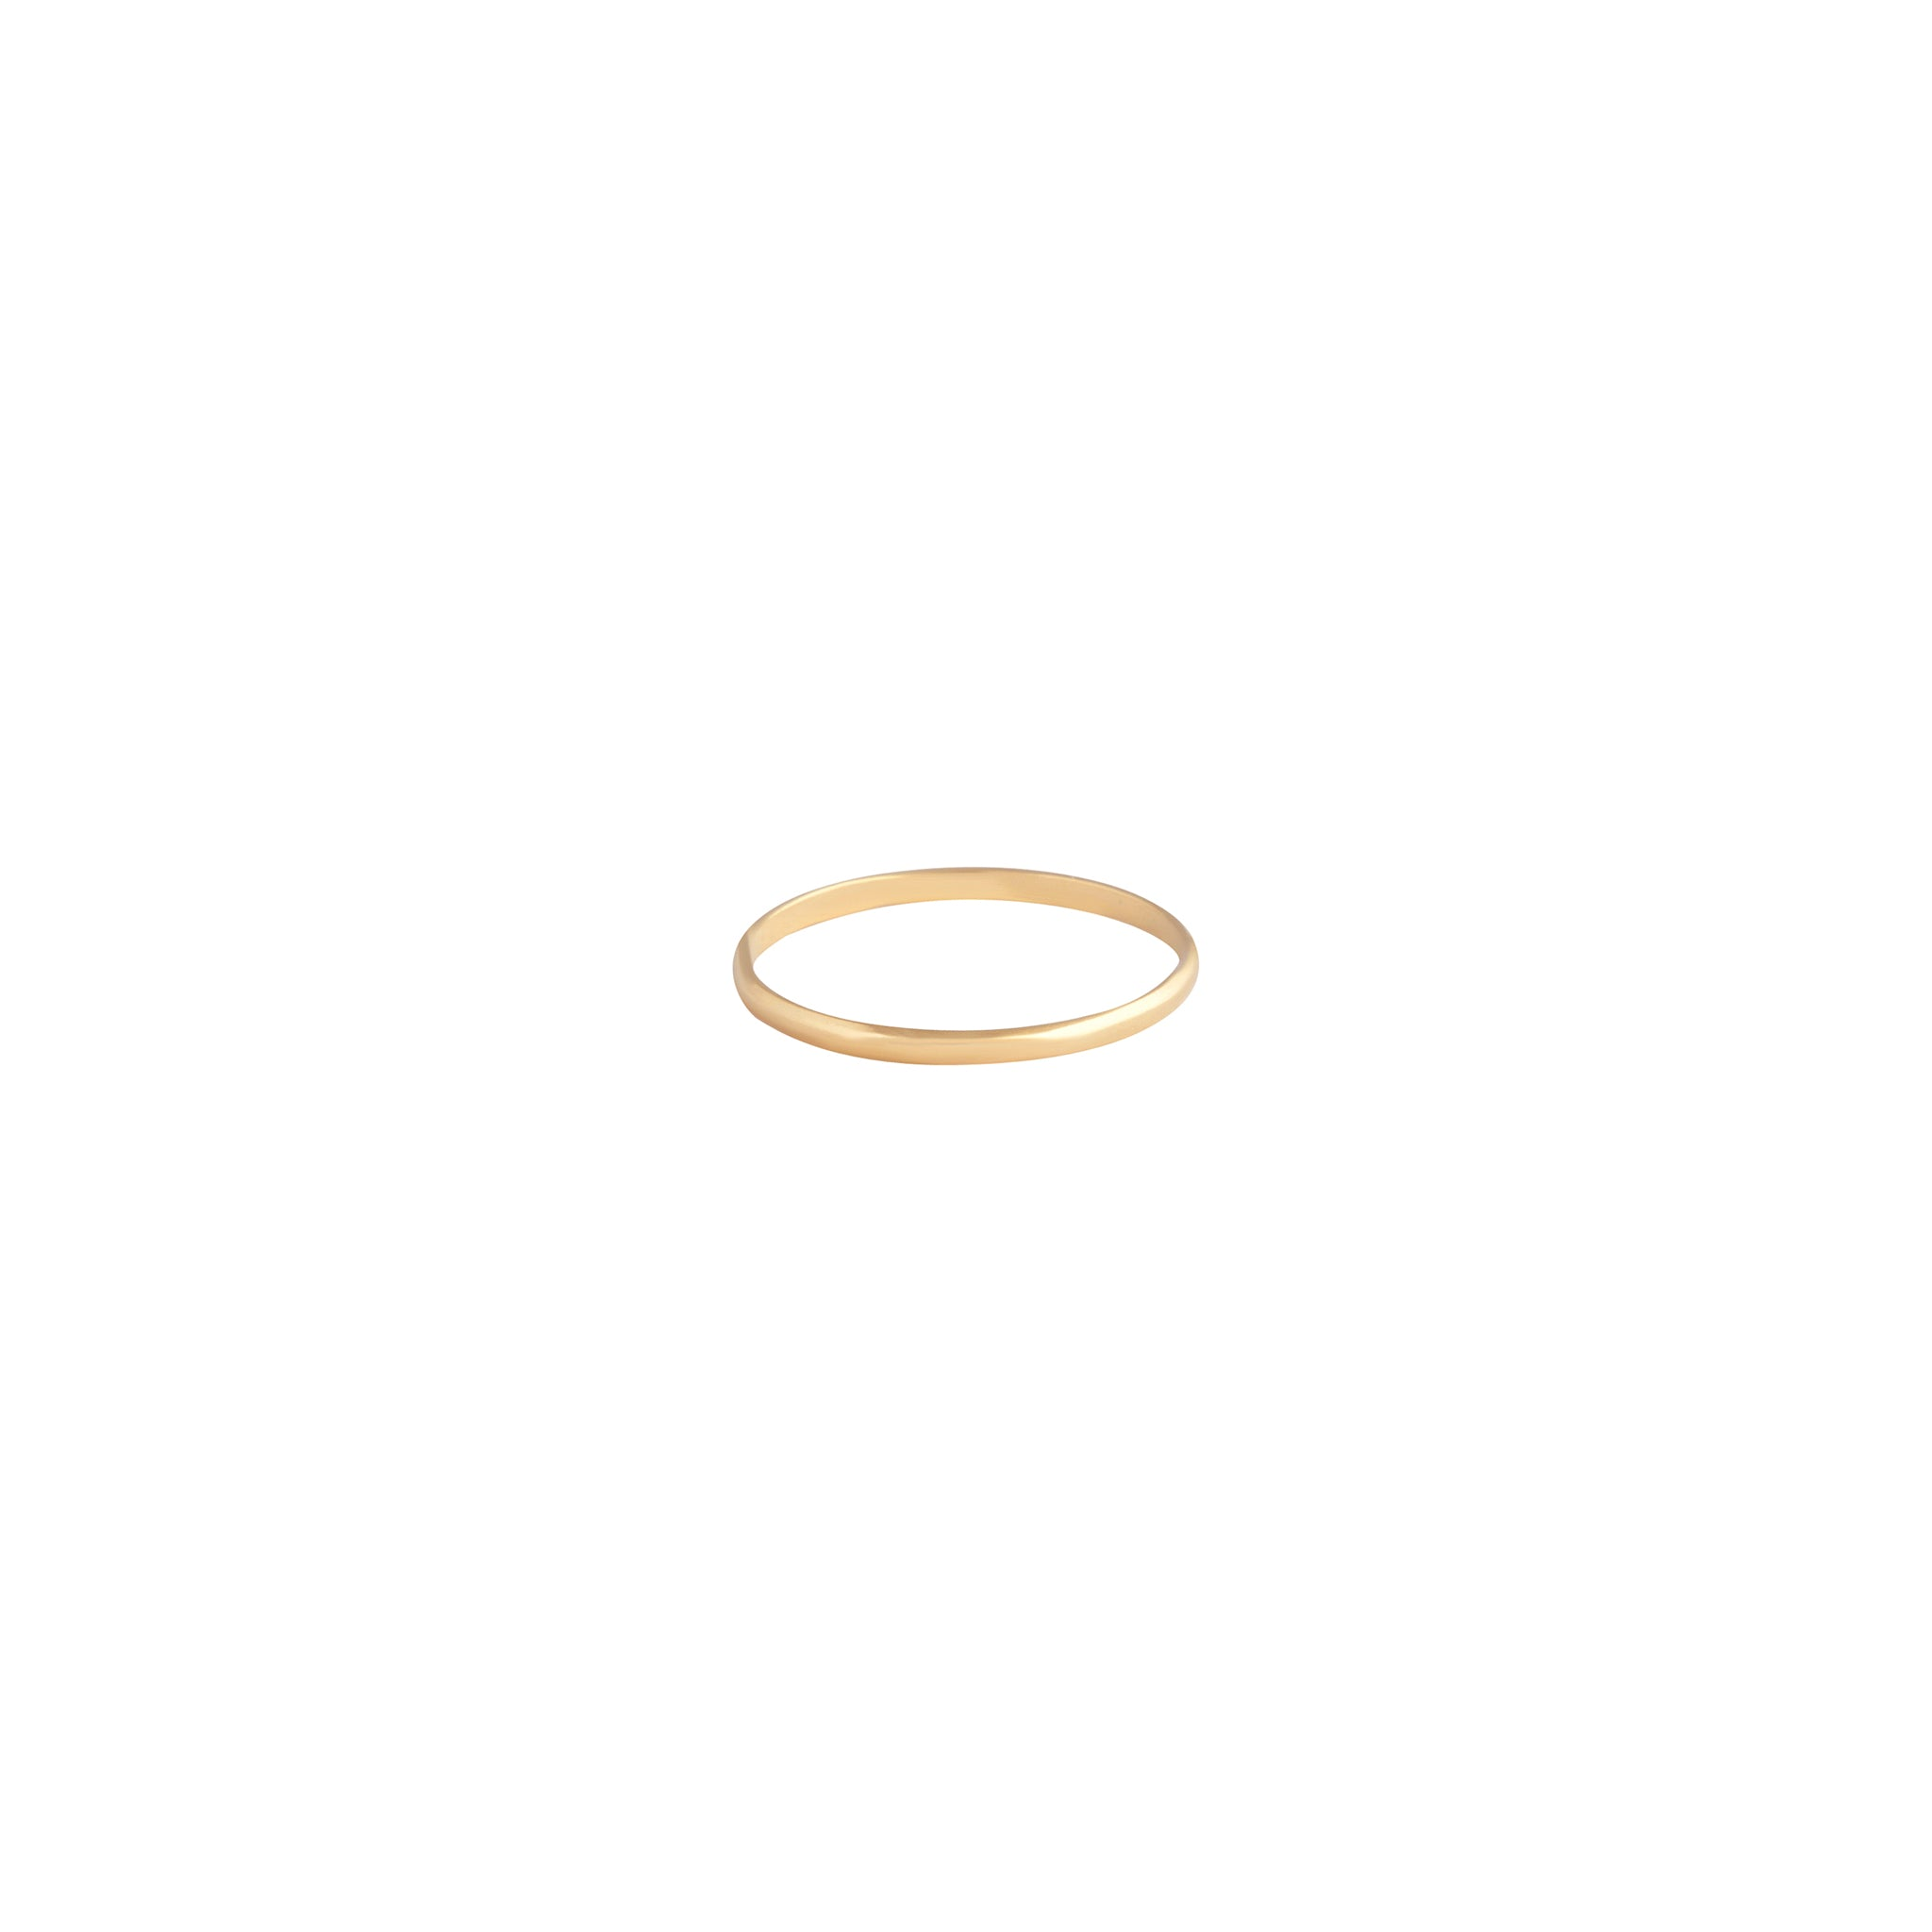 Gold Plated 925 SS Thin Band Ring